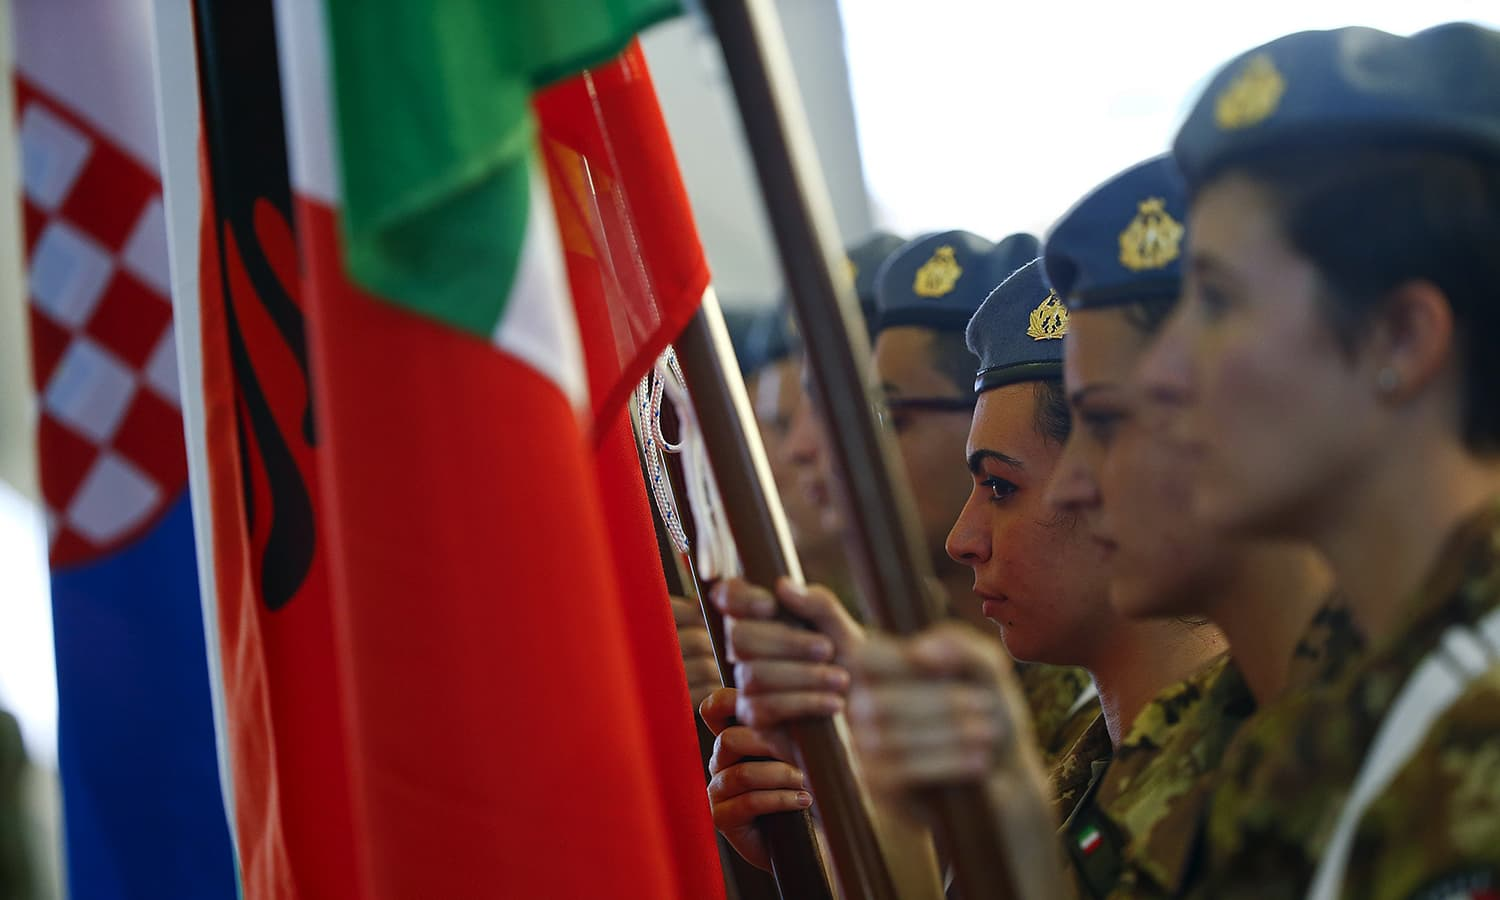 Italian soldiers hold flags during a Nato military exercise at the Birgi Nato airbase in Trapani, Italy. — Reuters